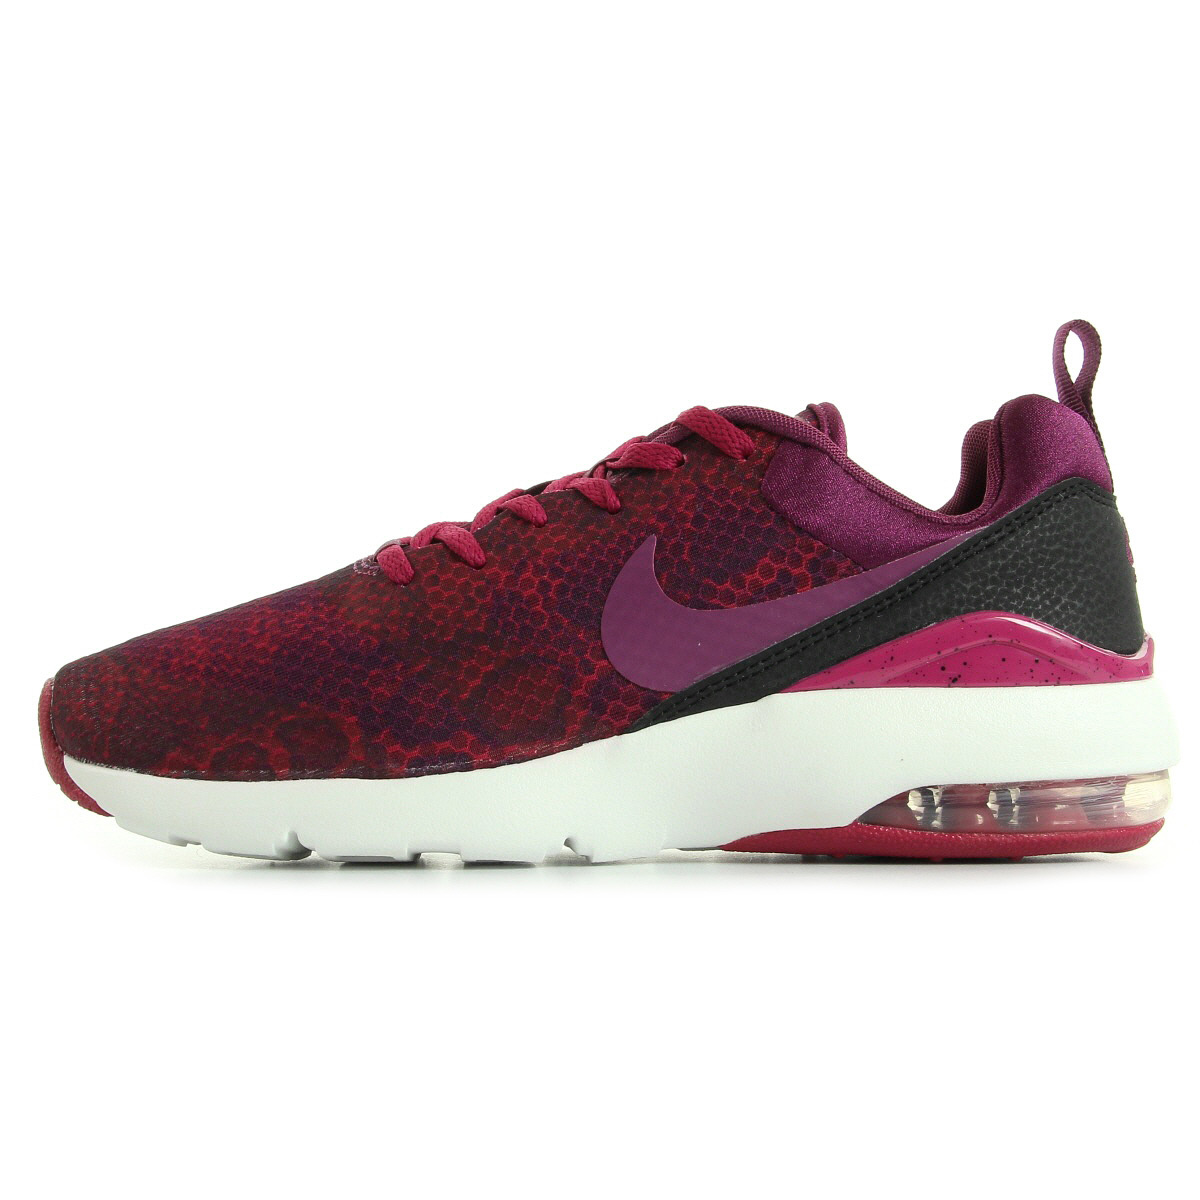 Chaussures Nike Air Max Siren rose fushia Fashion femme XEM7RvX